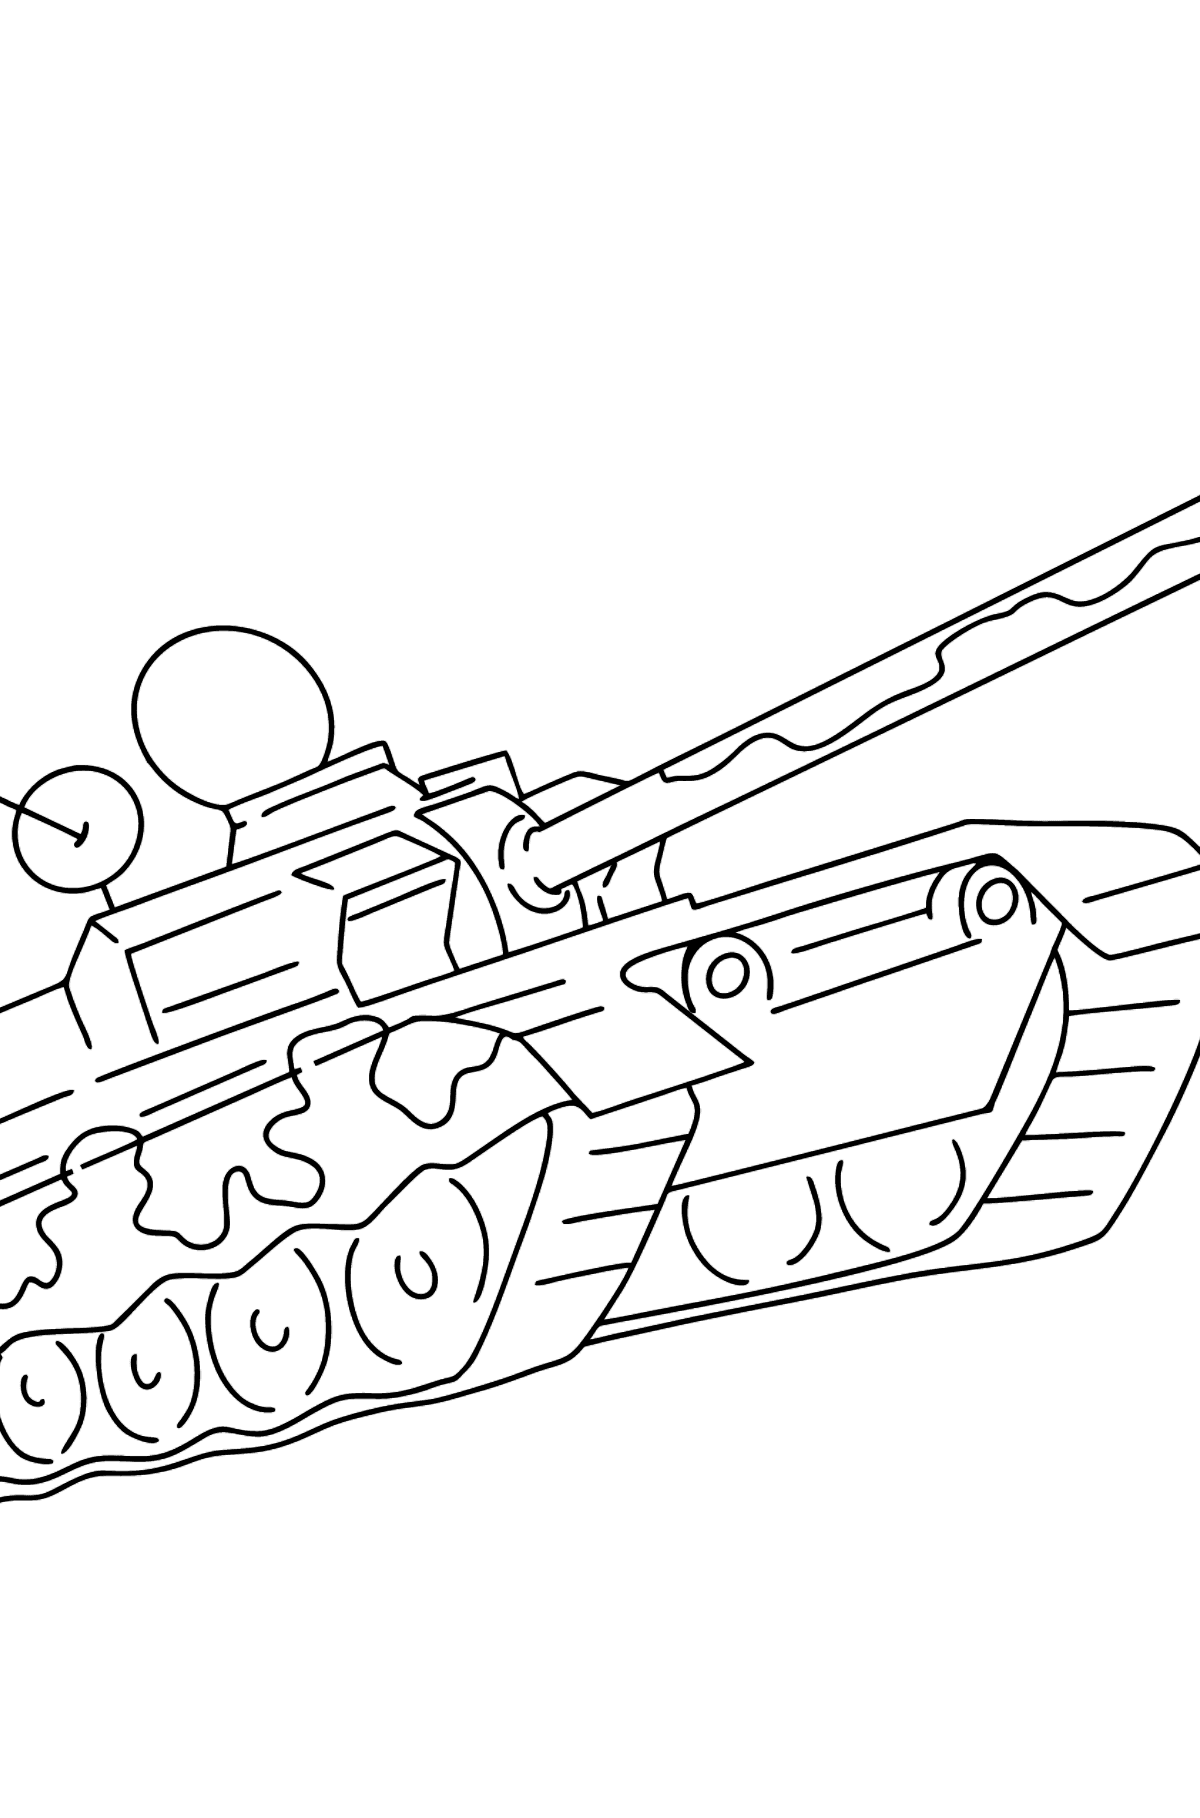 Military Tank coloring page - Coloring Pages for Kids